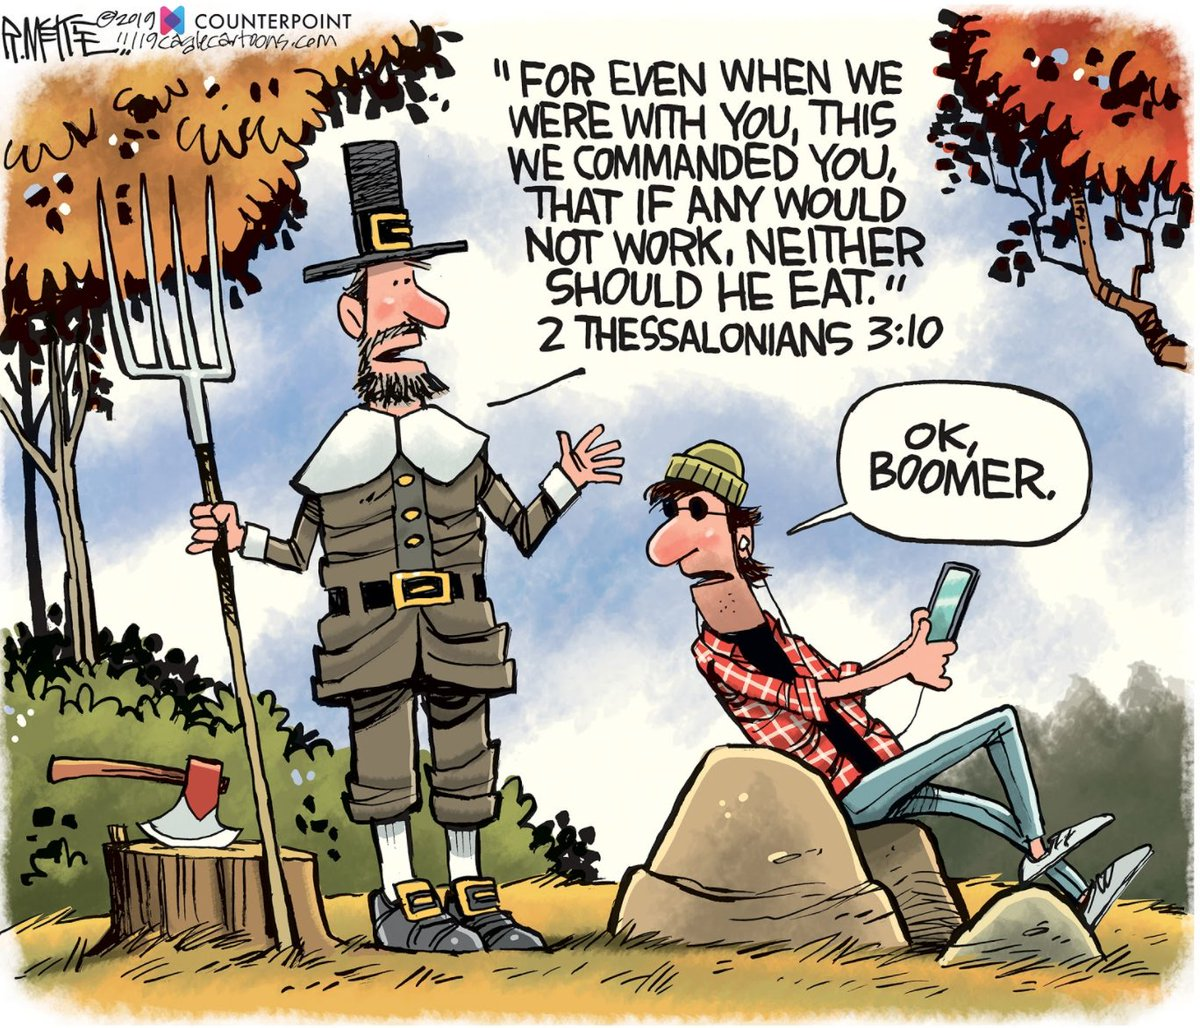 Our new release is out today! Check it out at counterpoint.com Thoughts on this toon? Cartoon by: @AUG_RickMcKee #okboomer